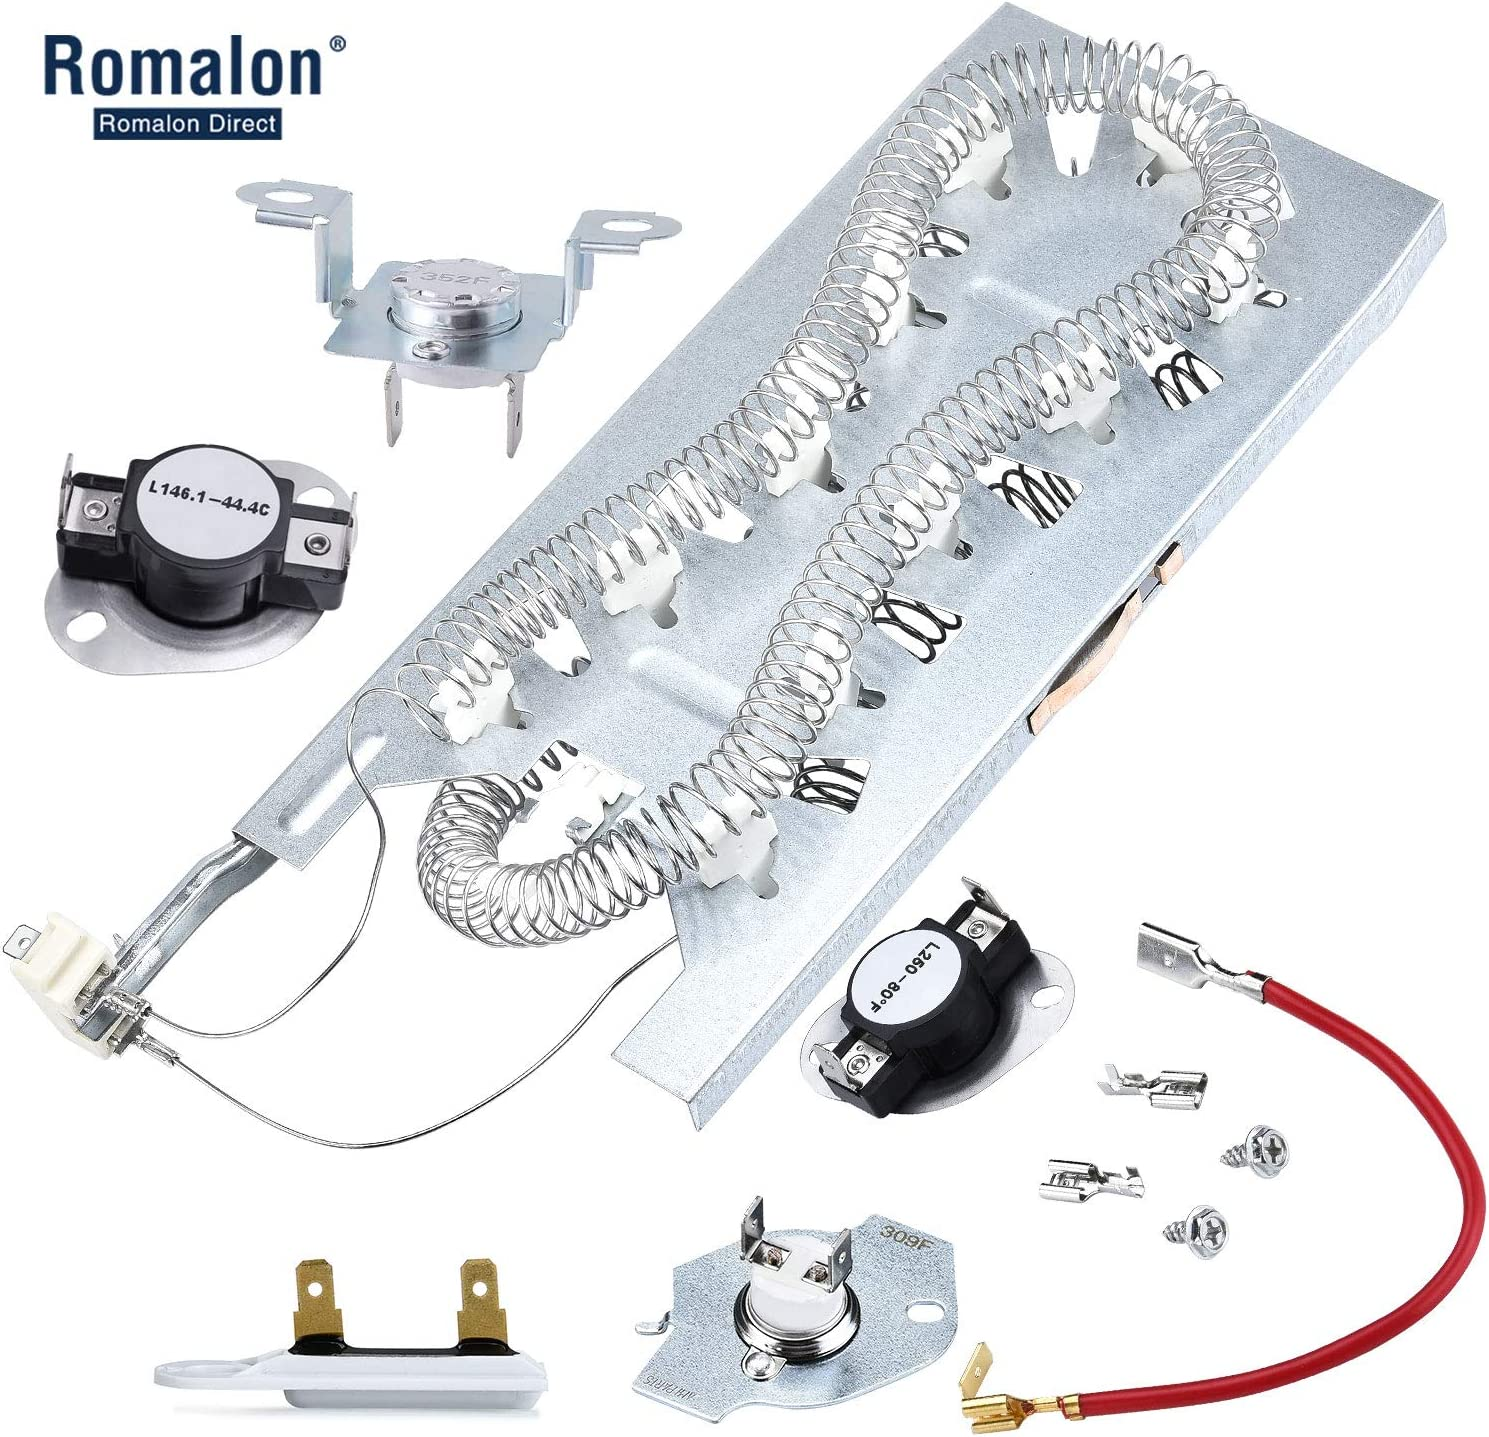 3387747 WP3387747 Dryer Heating Element Replacement for Whirlpool with 279816 Thermostat Kit & 279973 3392519 Thermal Fuse Dryer Thermal Cut-Off Fuse Kit Replace Part # AP6008281 PS11741416